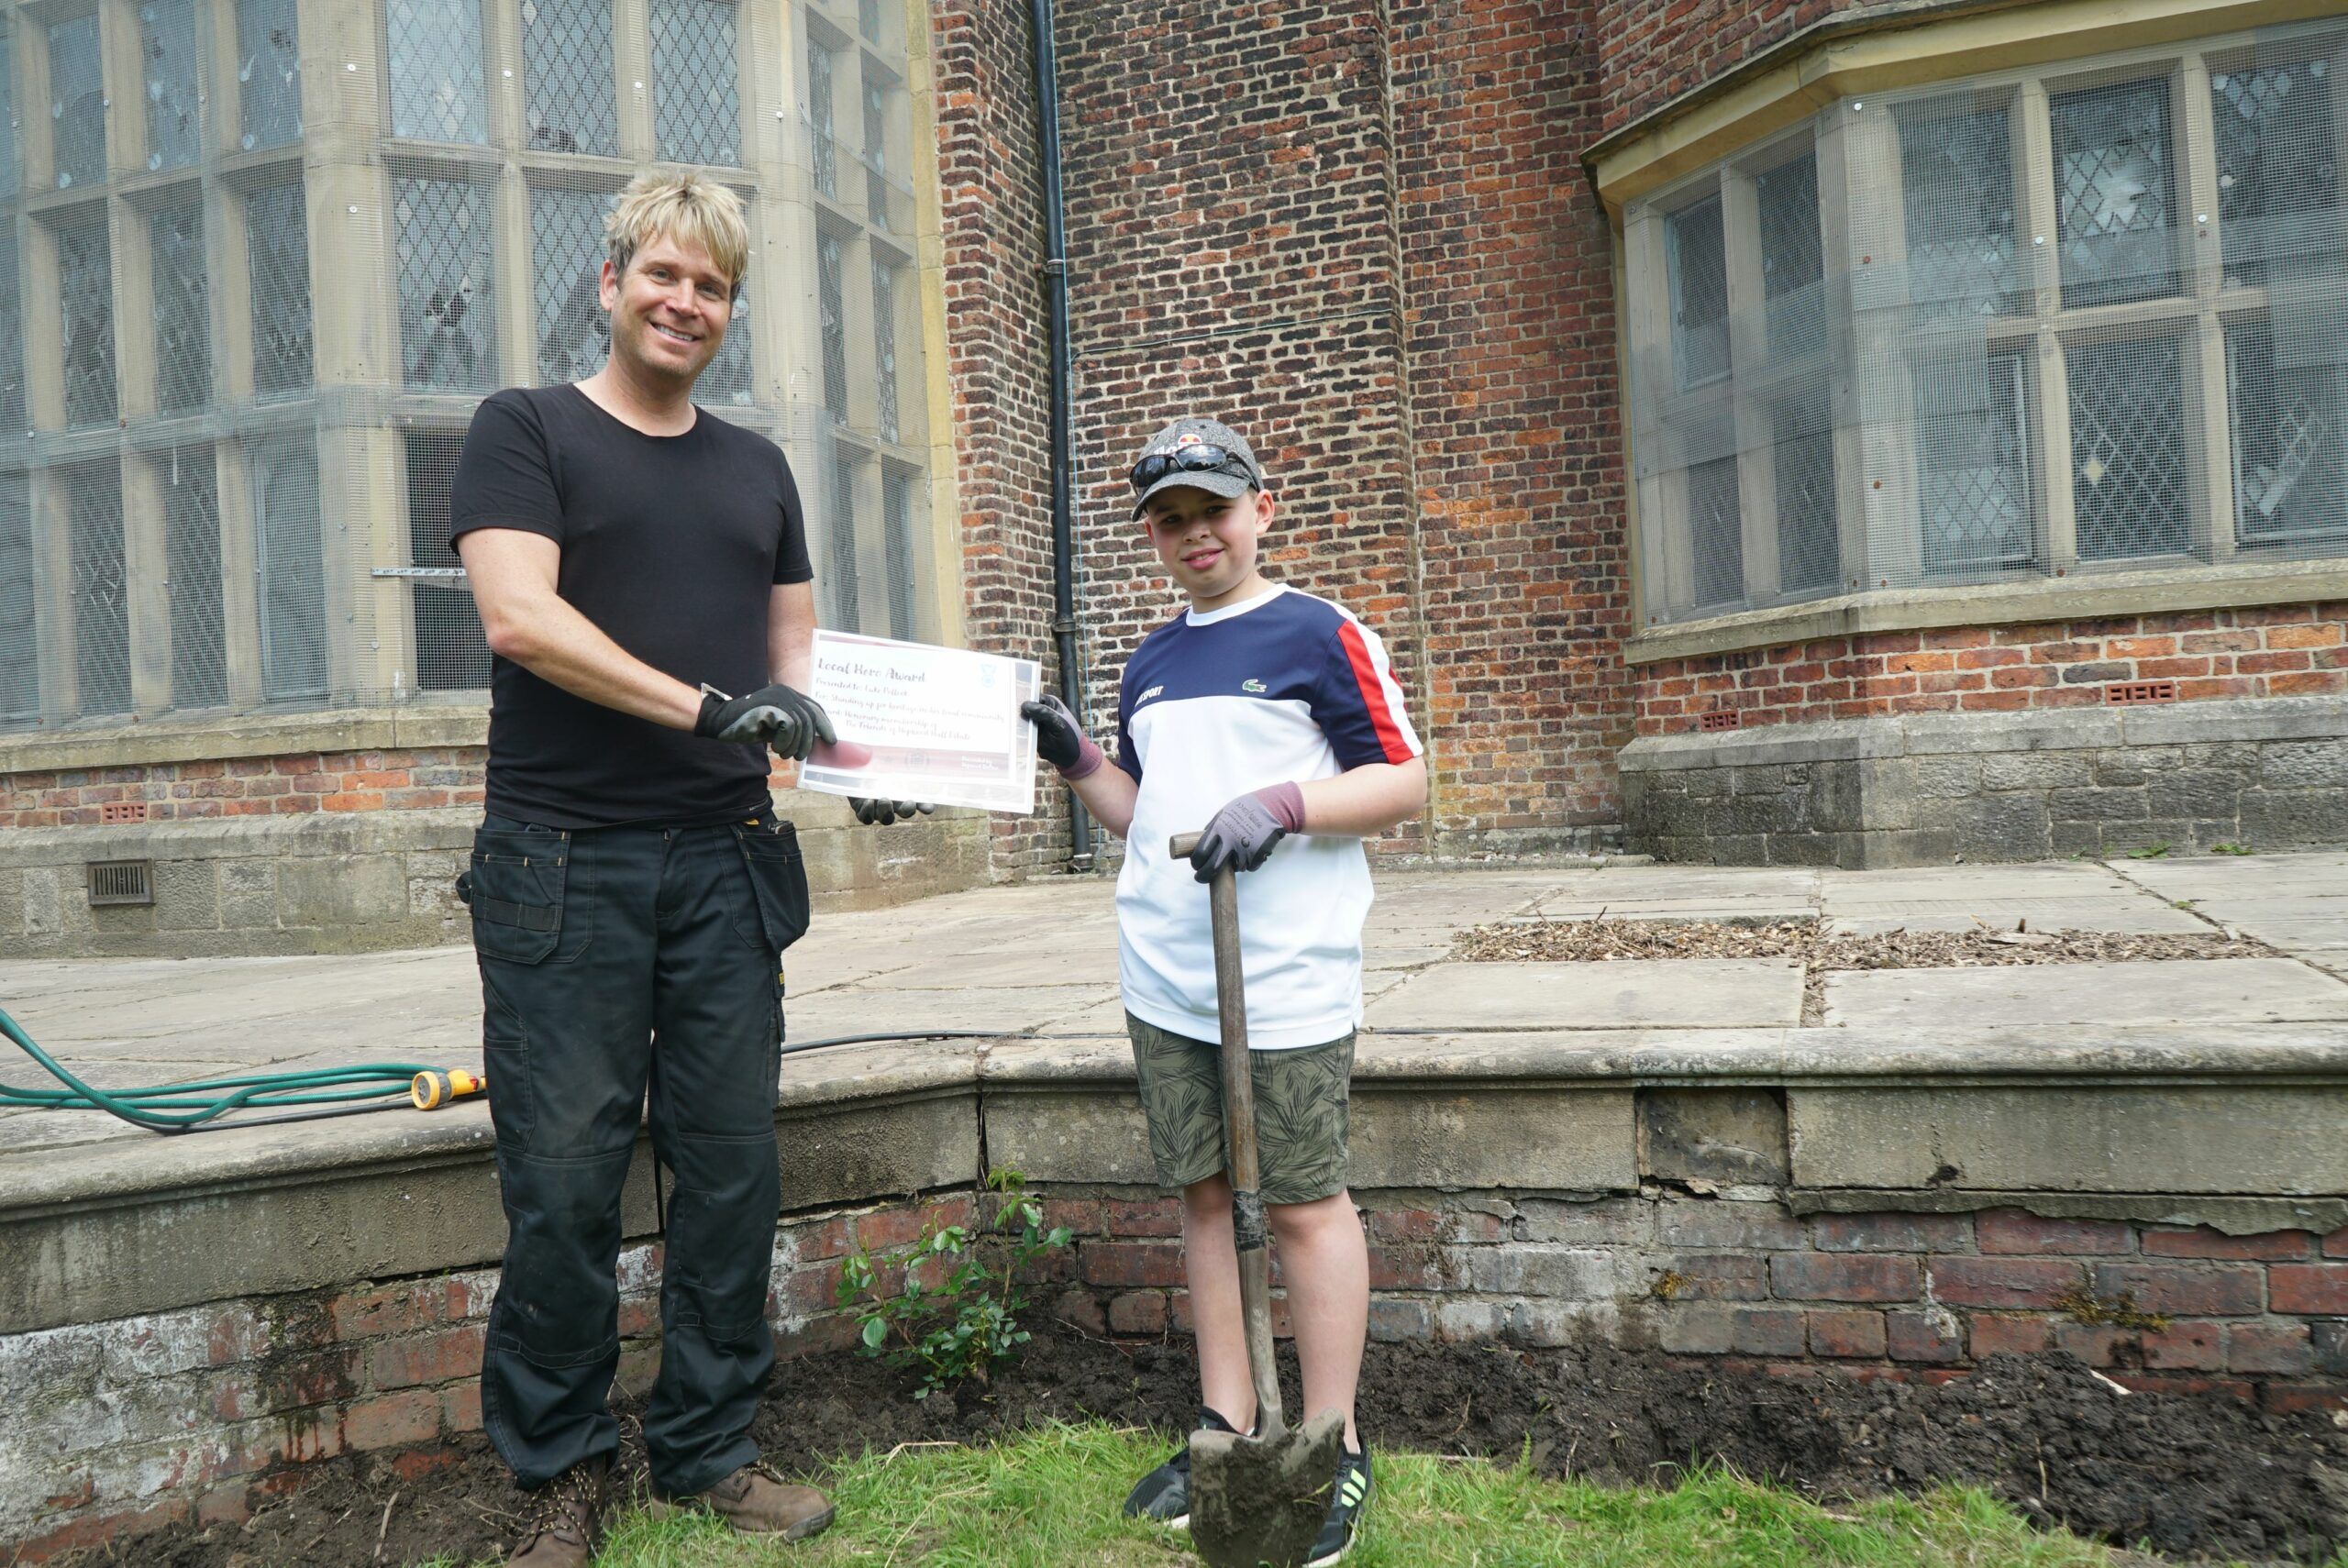 ROCHDALE ONLINE: 'Local hero' Luke Pollock visits Hopwood Hall Estate to receive certificate and plant a special rose: Hopwood Hall Rochdale